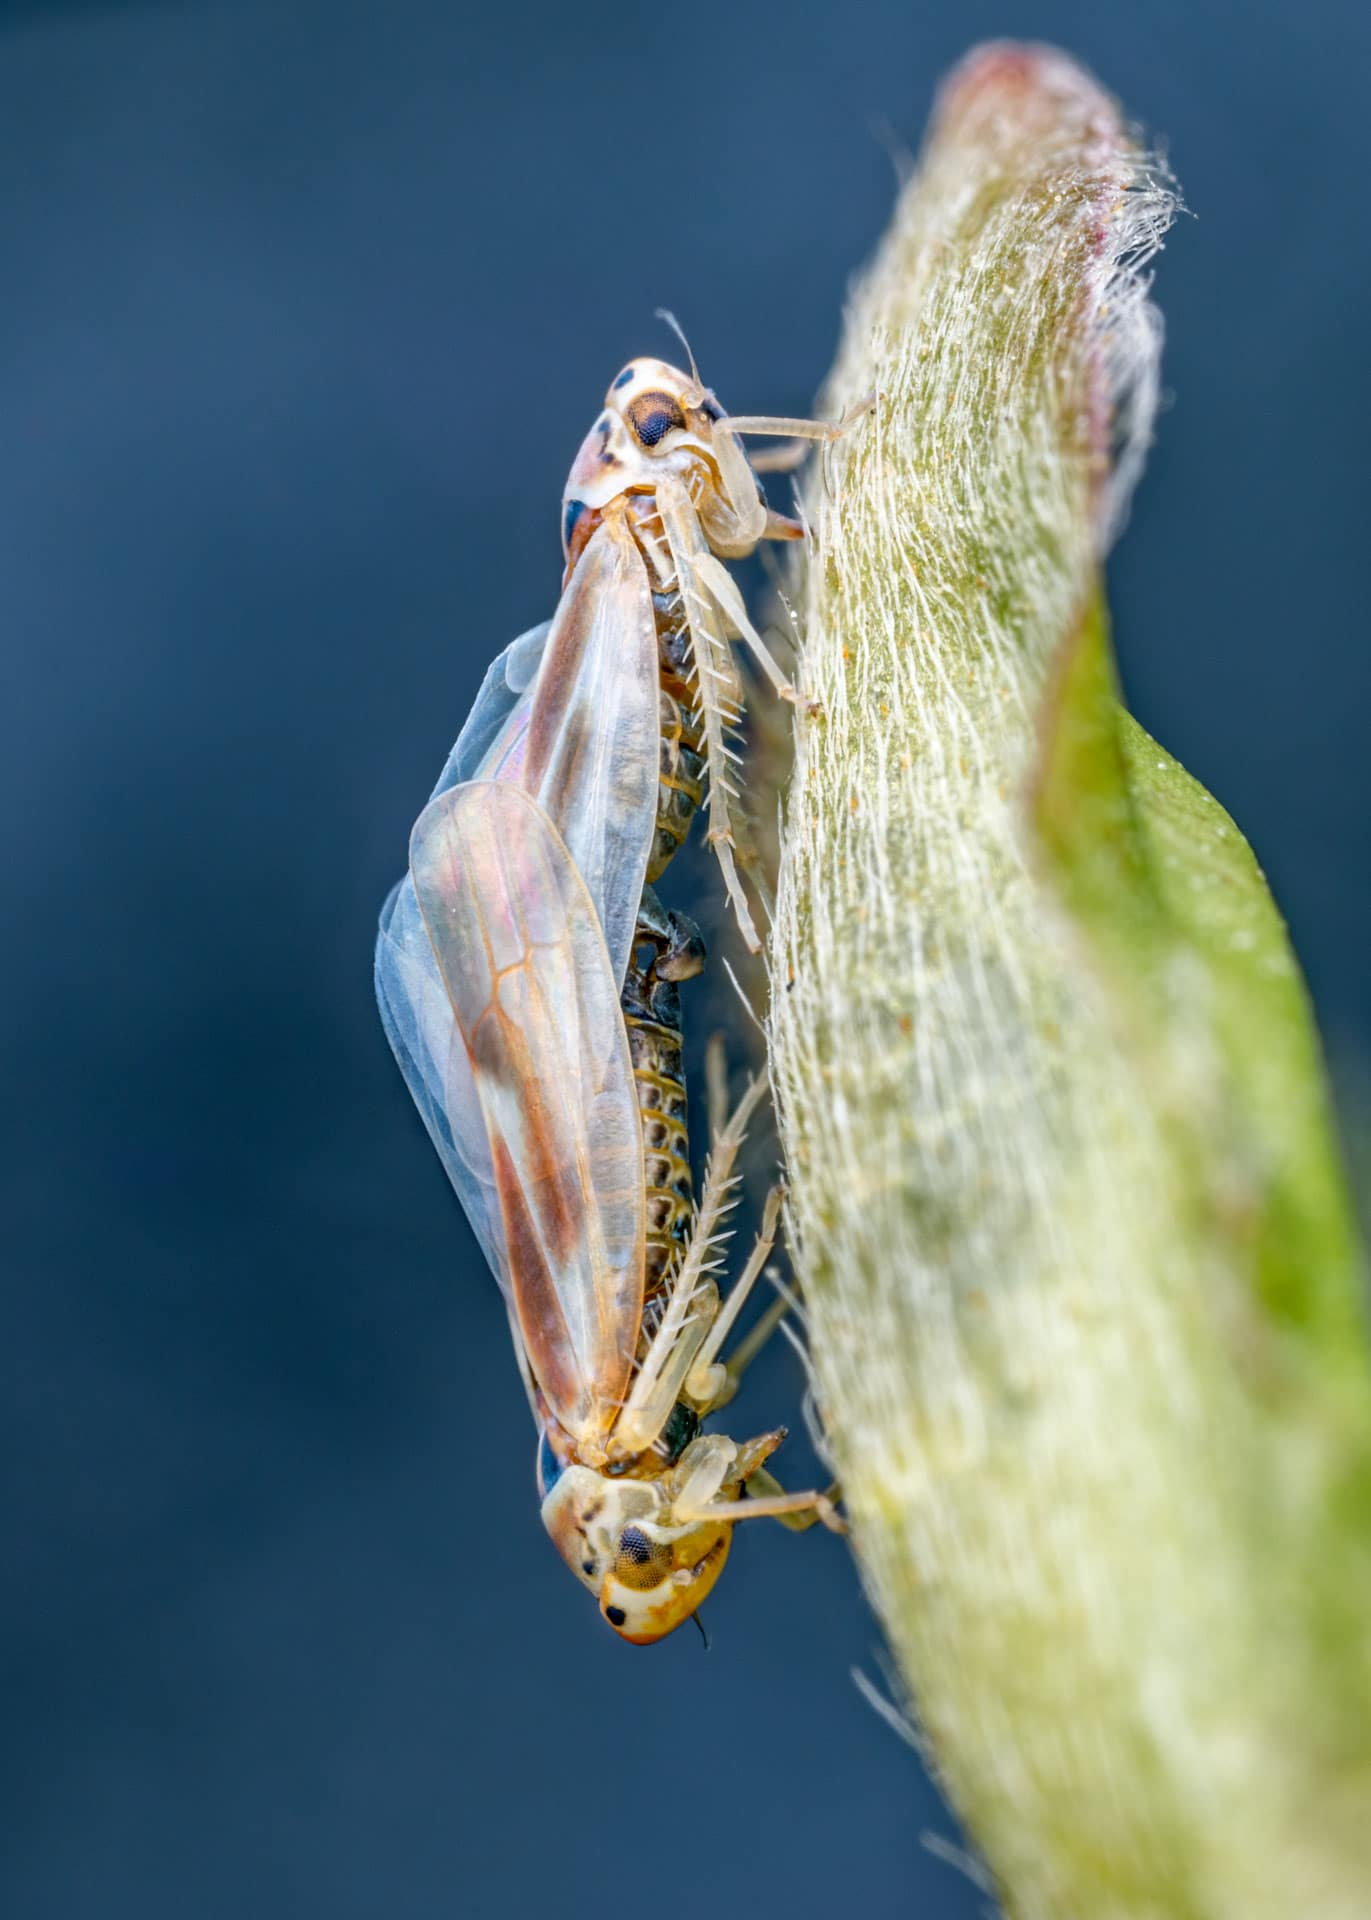 Leafhoppers photographed in Lucerne, Switzerland